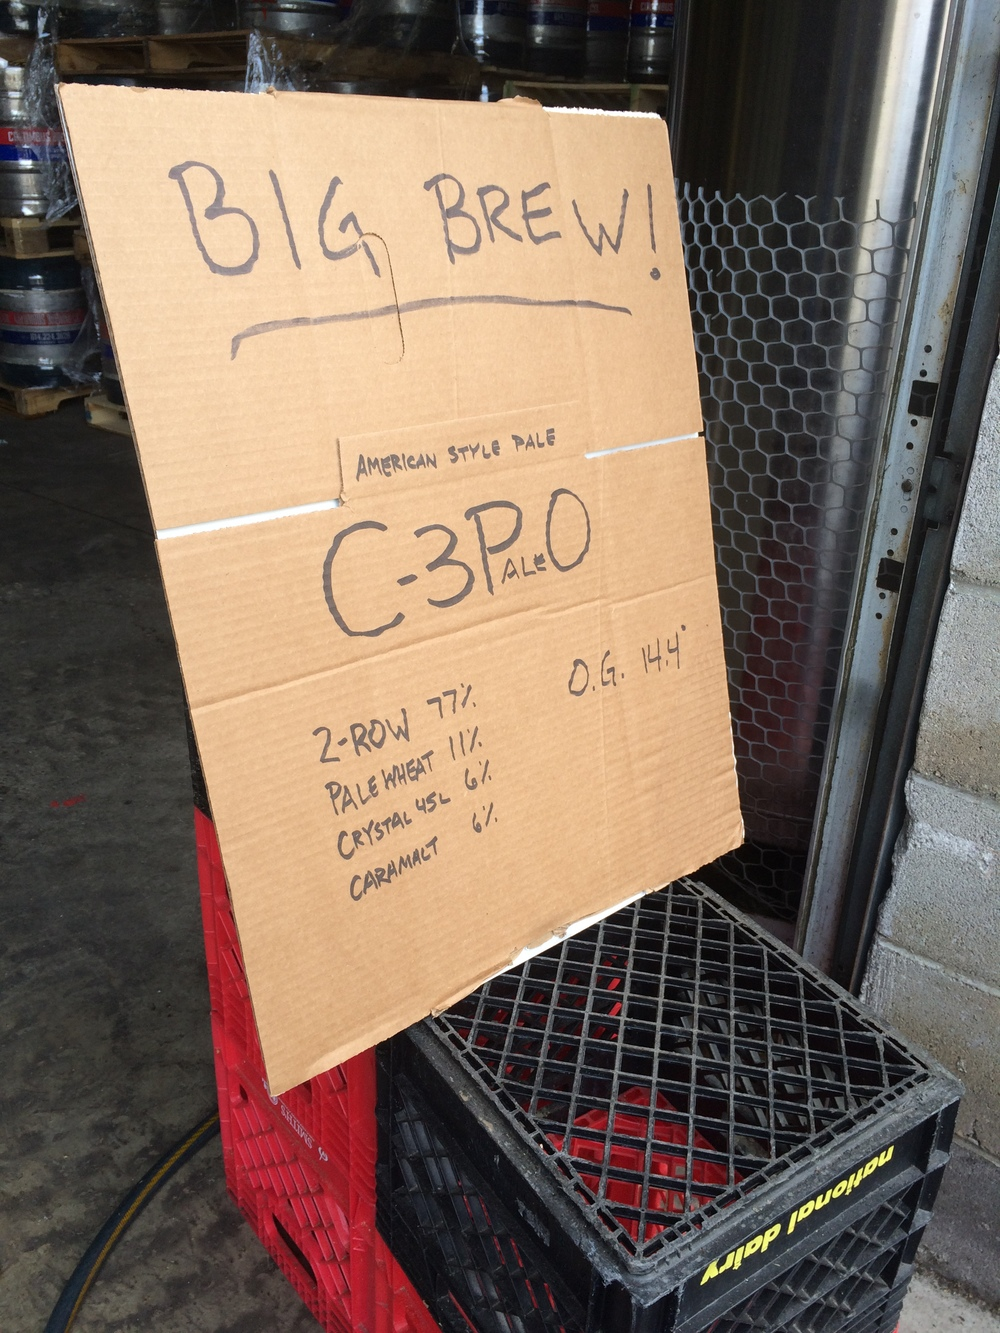 The specs for CBC's pale ale wort